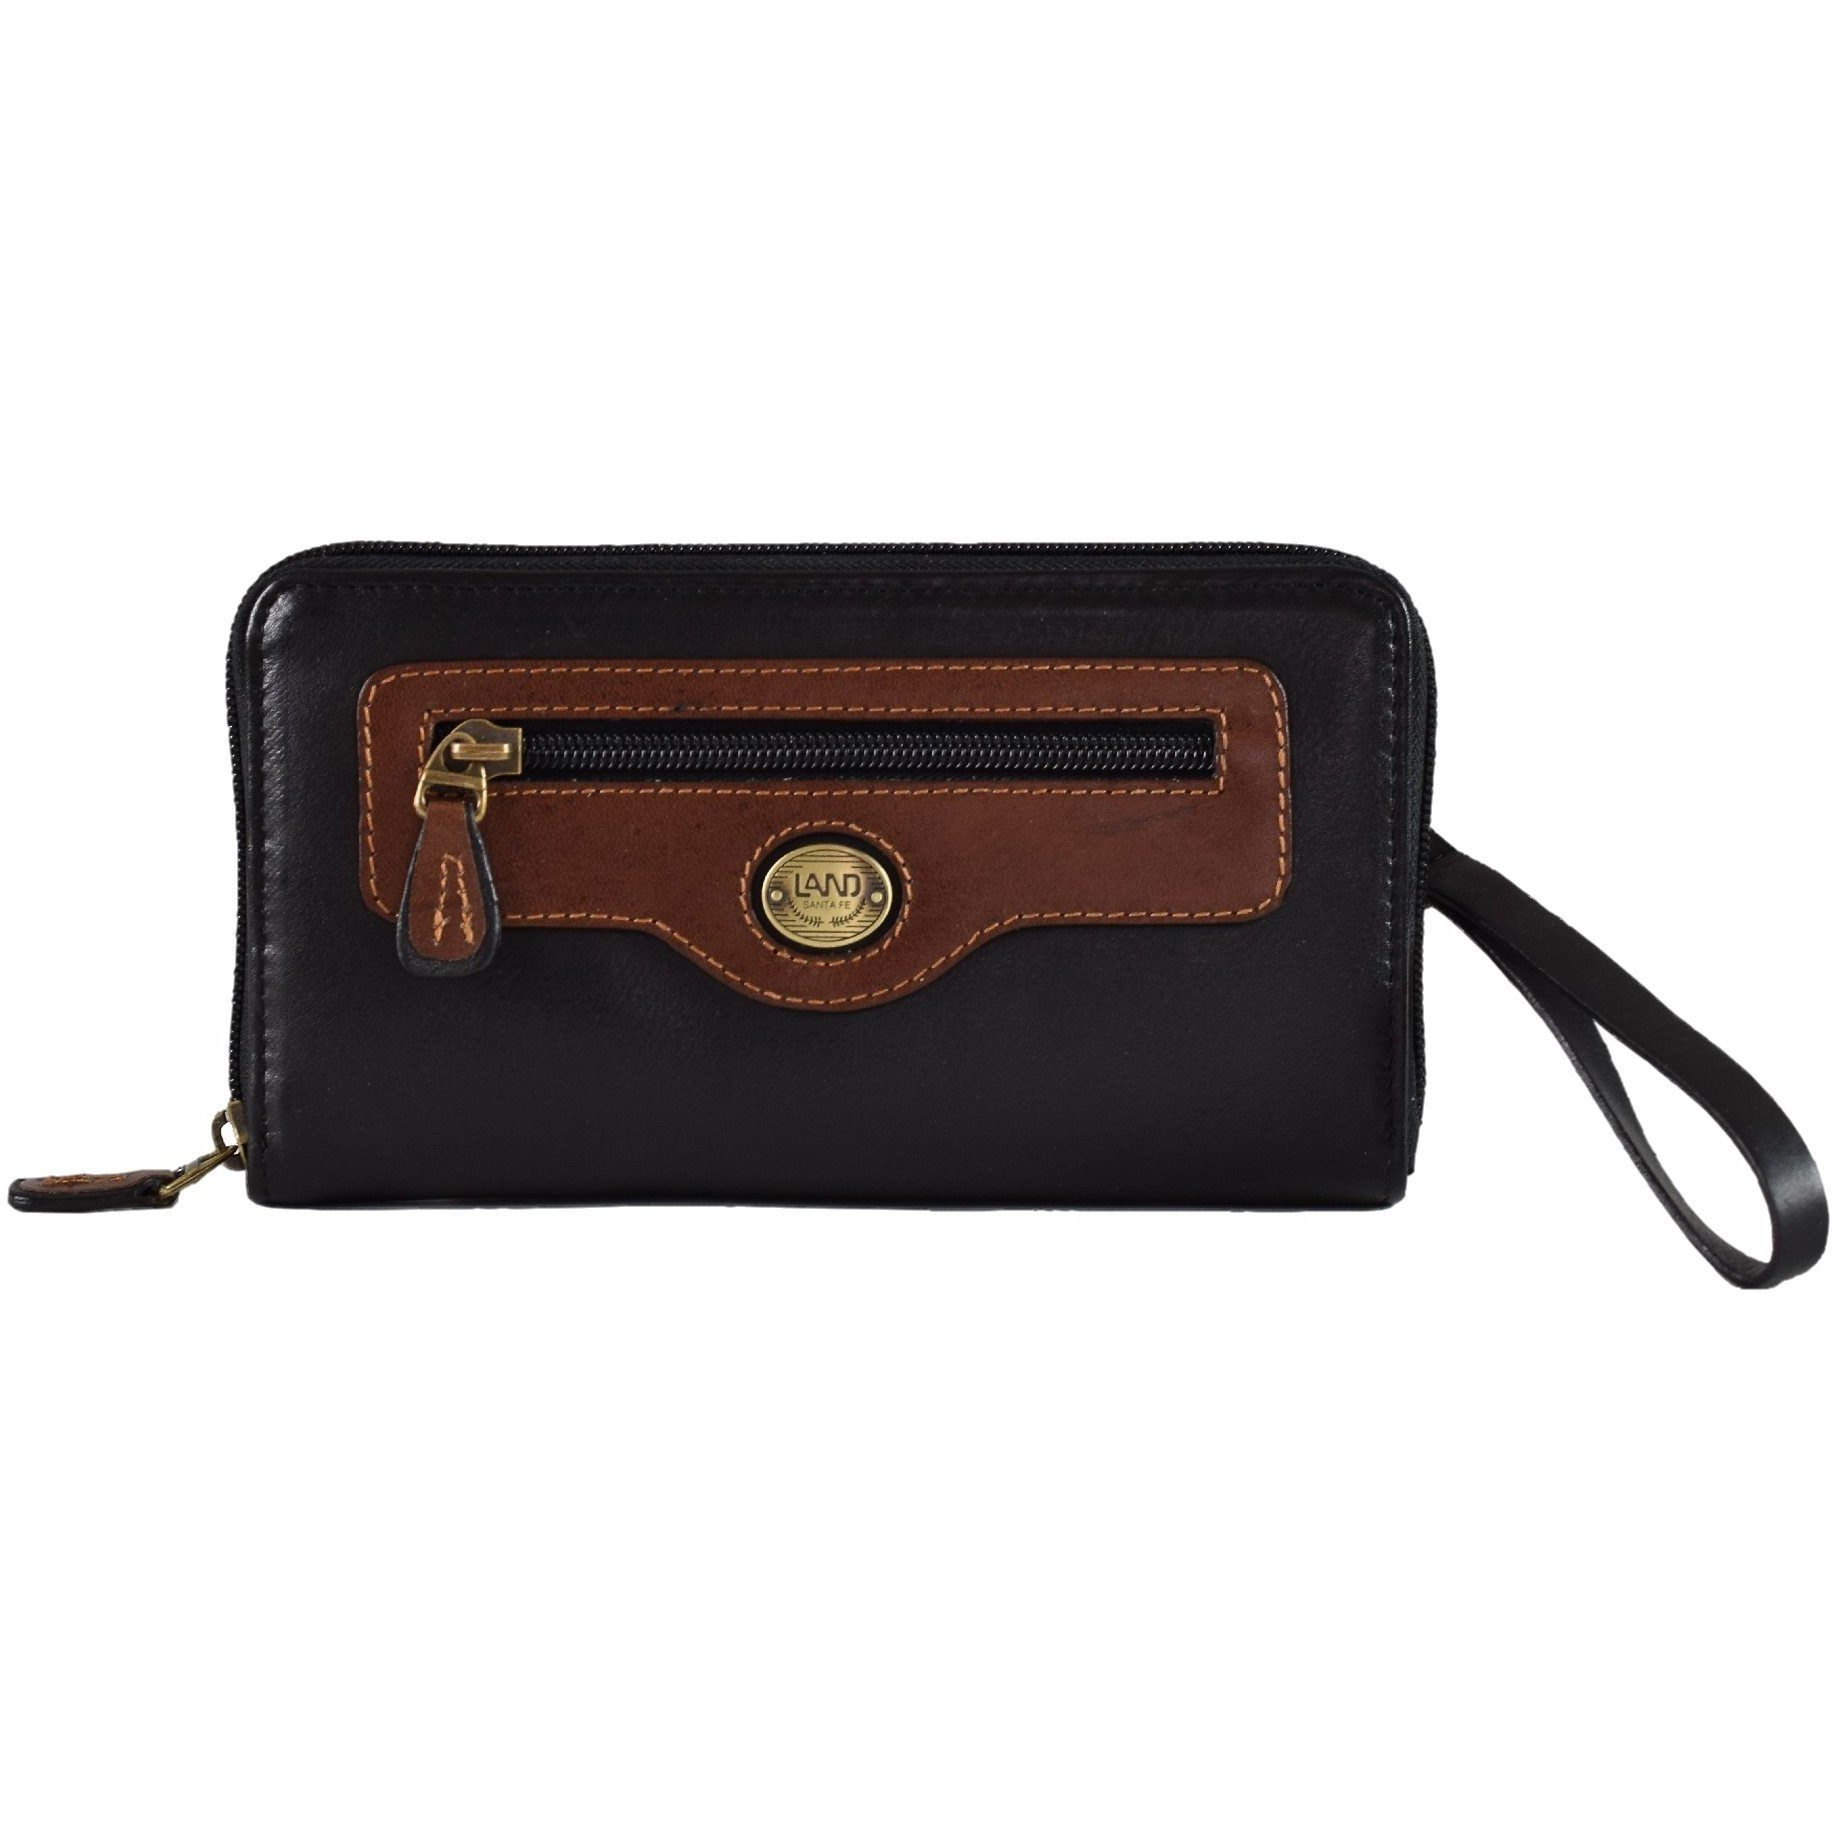 Santa Fe Ladies Wristlet, Wallet | LAND Leather